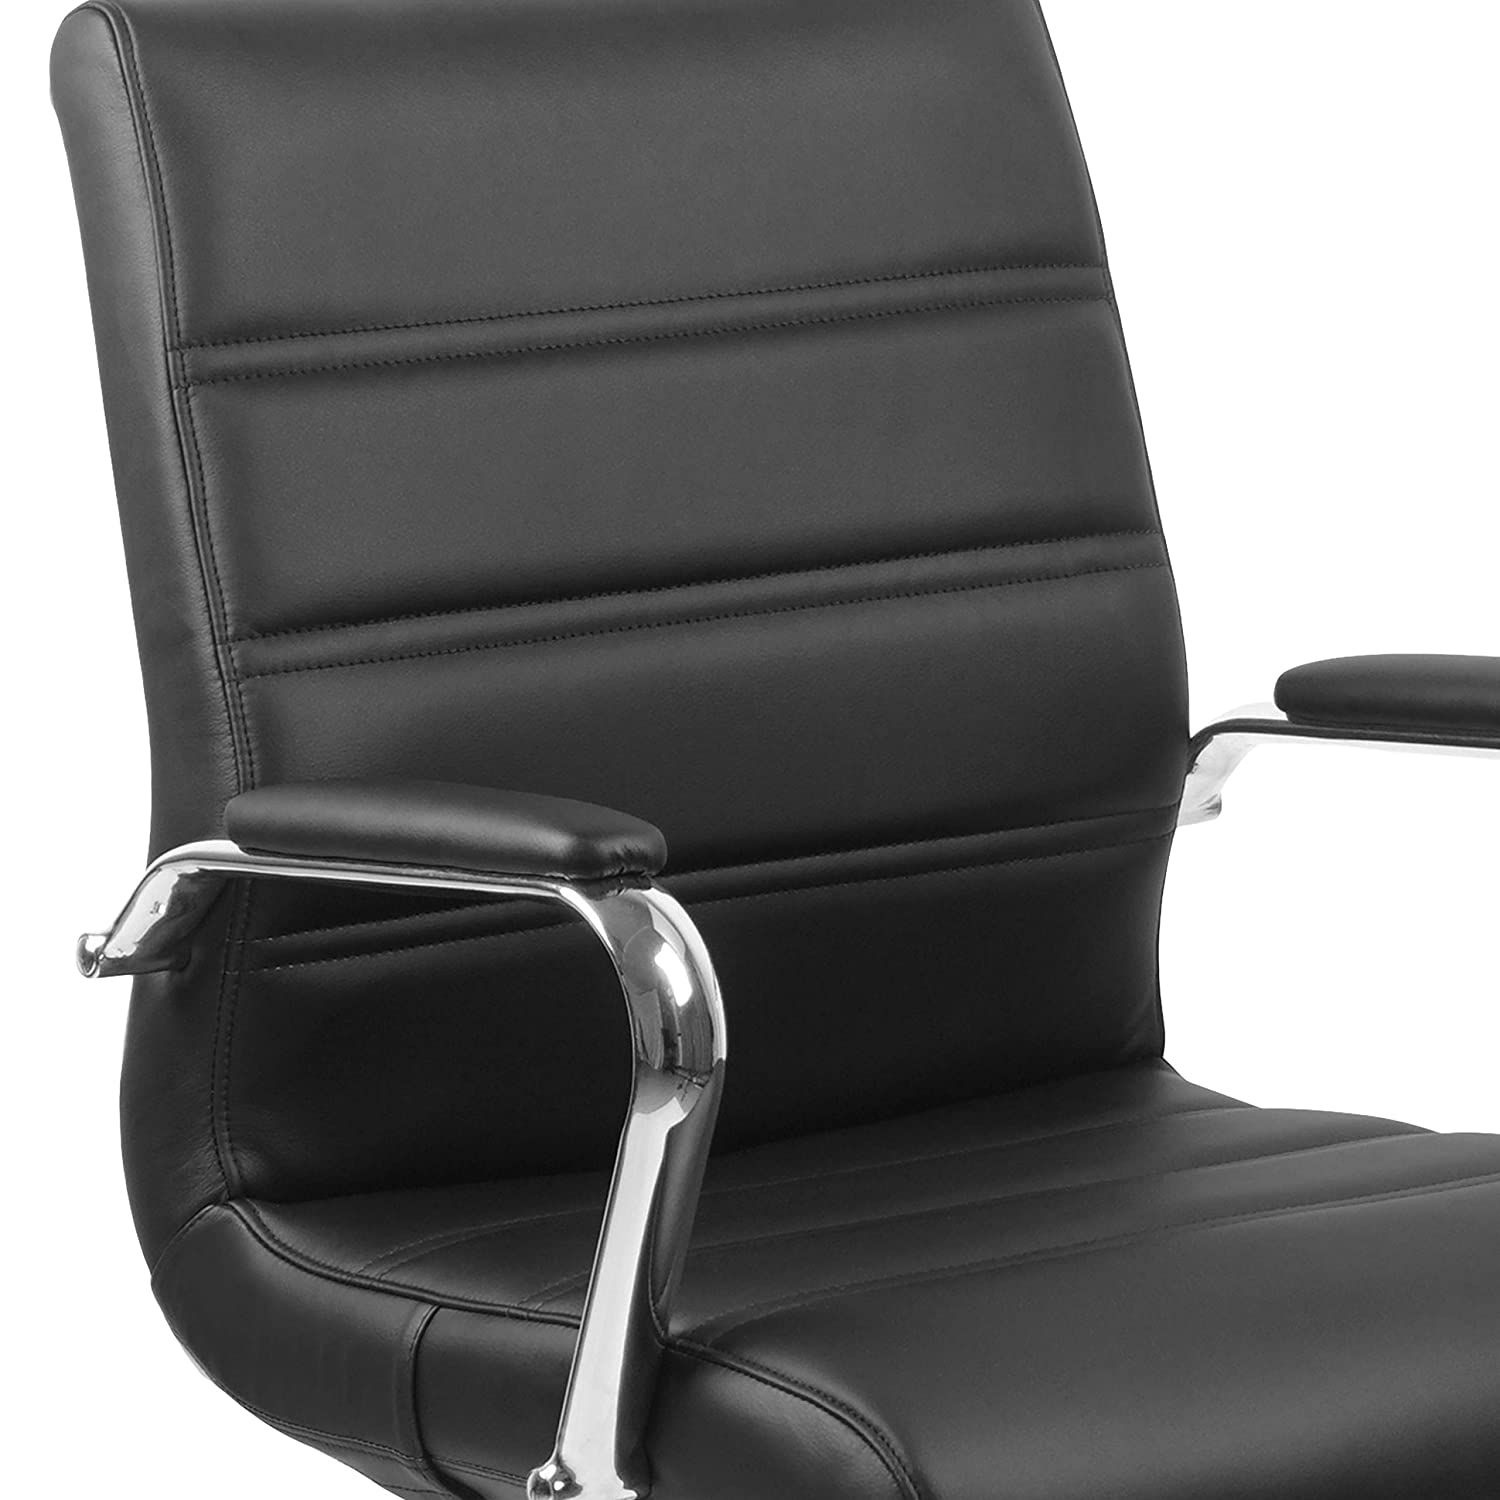 Flash Furniture Mid-Back Black Leather Executive Swivel Office Chair with Chrome Base and Arms, GO-2286M-BK-GG 71TV4ID6NZL